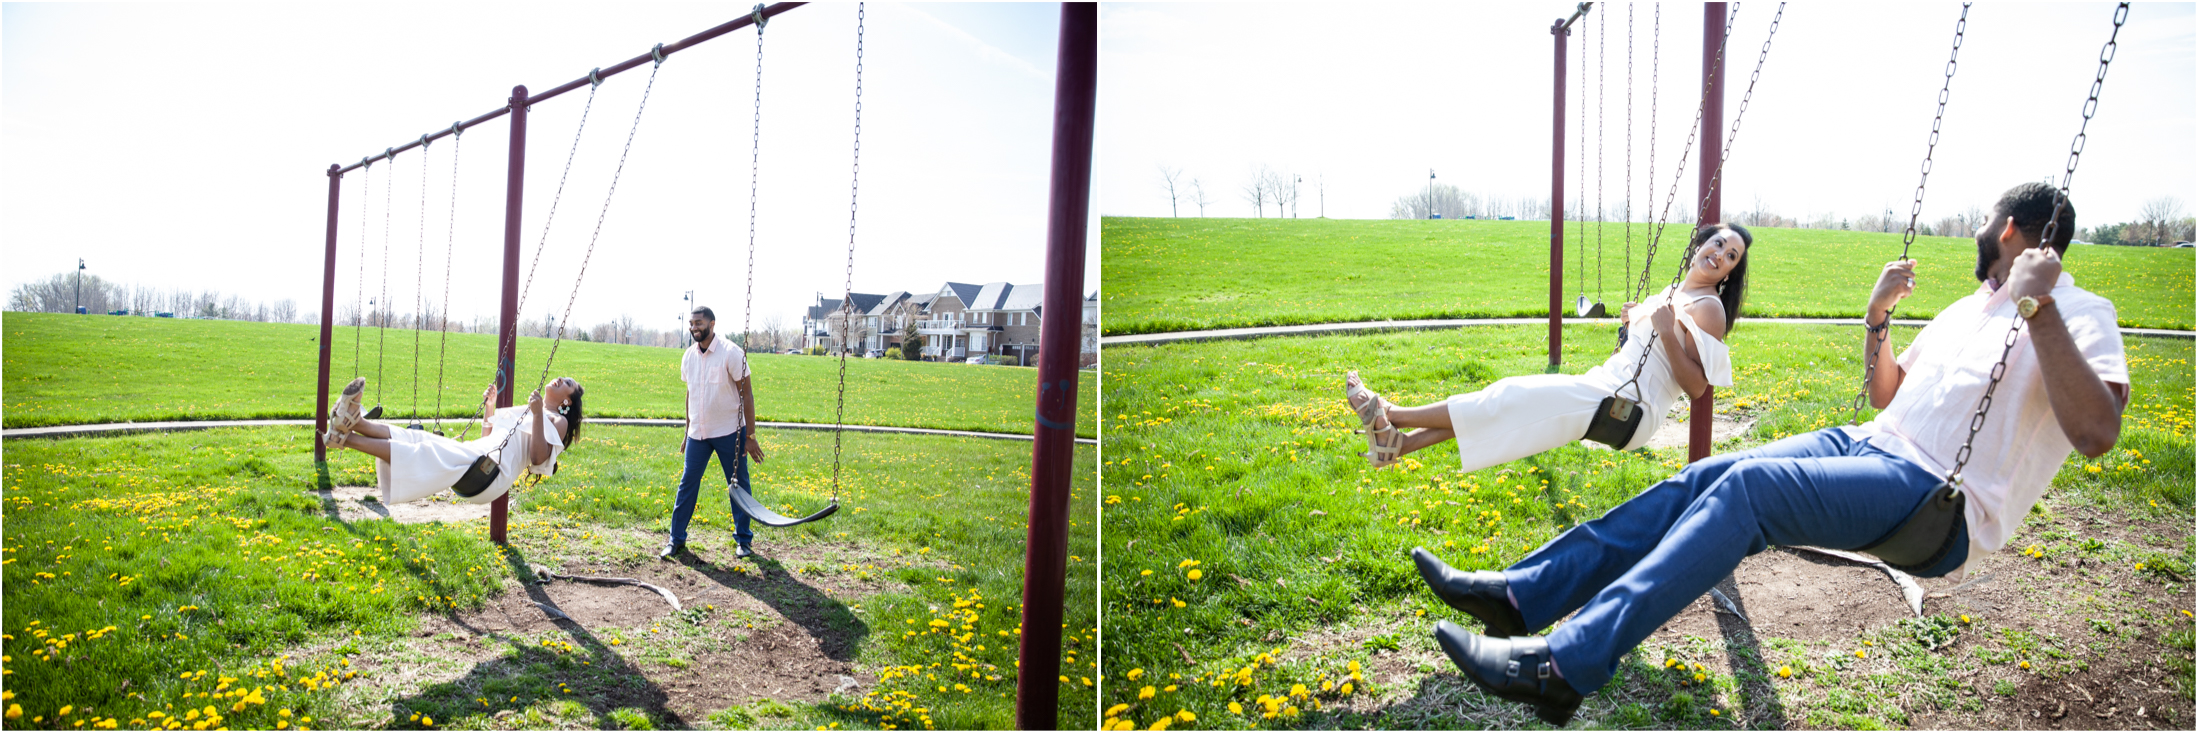 Engagement session photo of a couple on the playground swing set at Ajax's Lakeside Park